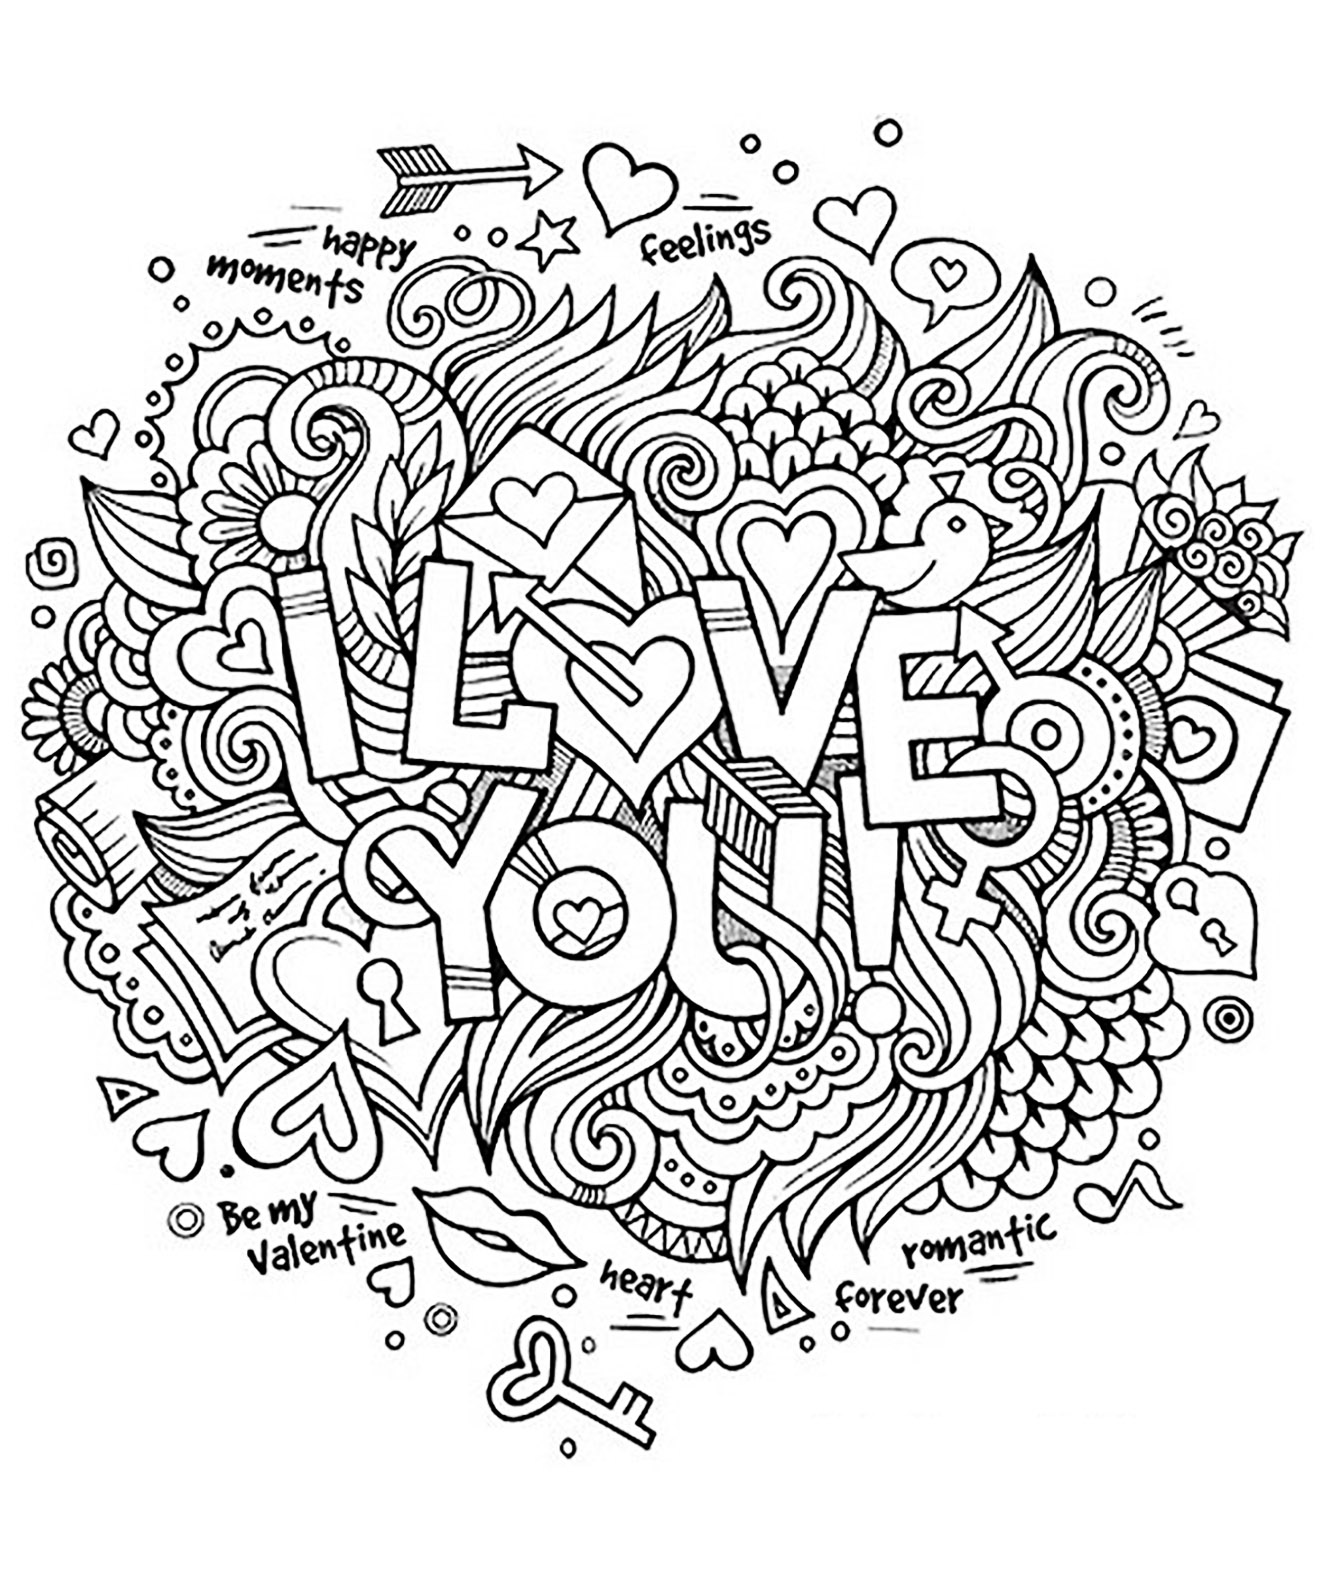 i love you coloring sheets quoti love you quot coloring pages gtgt disney coloring pages love sheets you coloring i